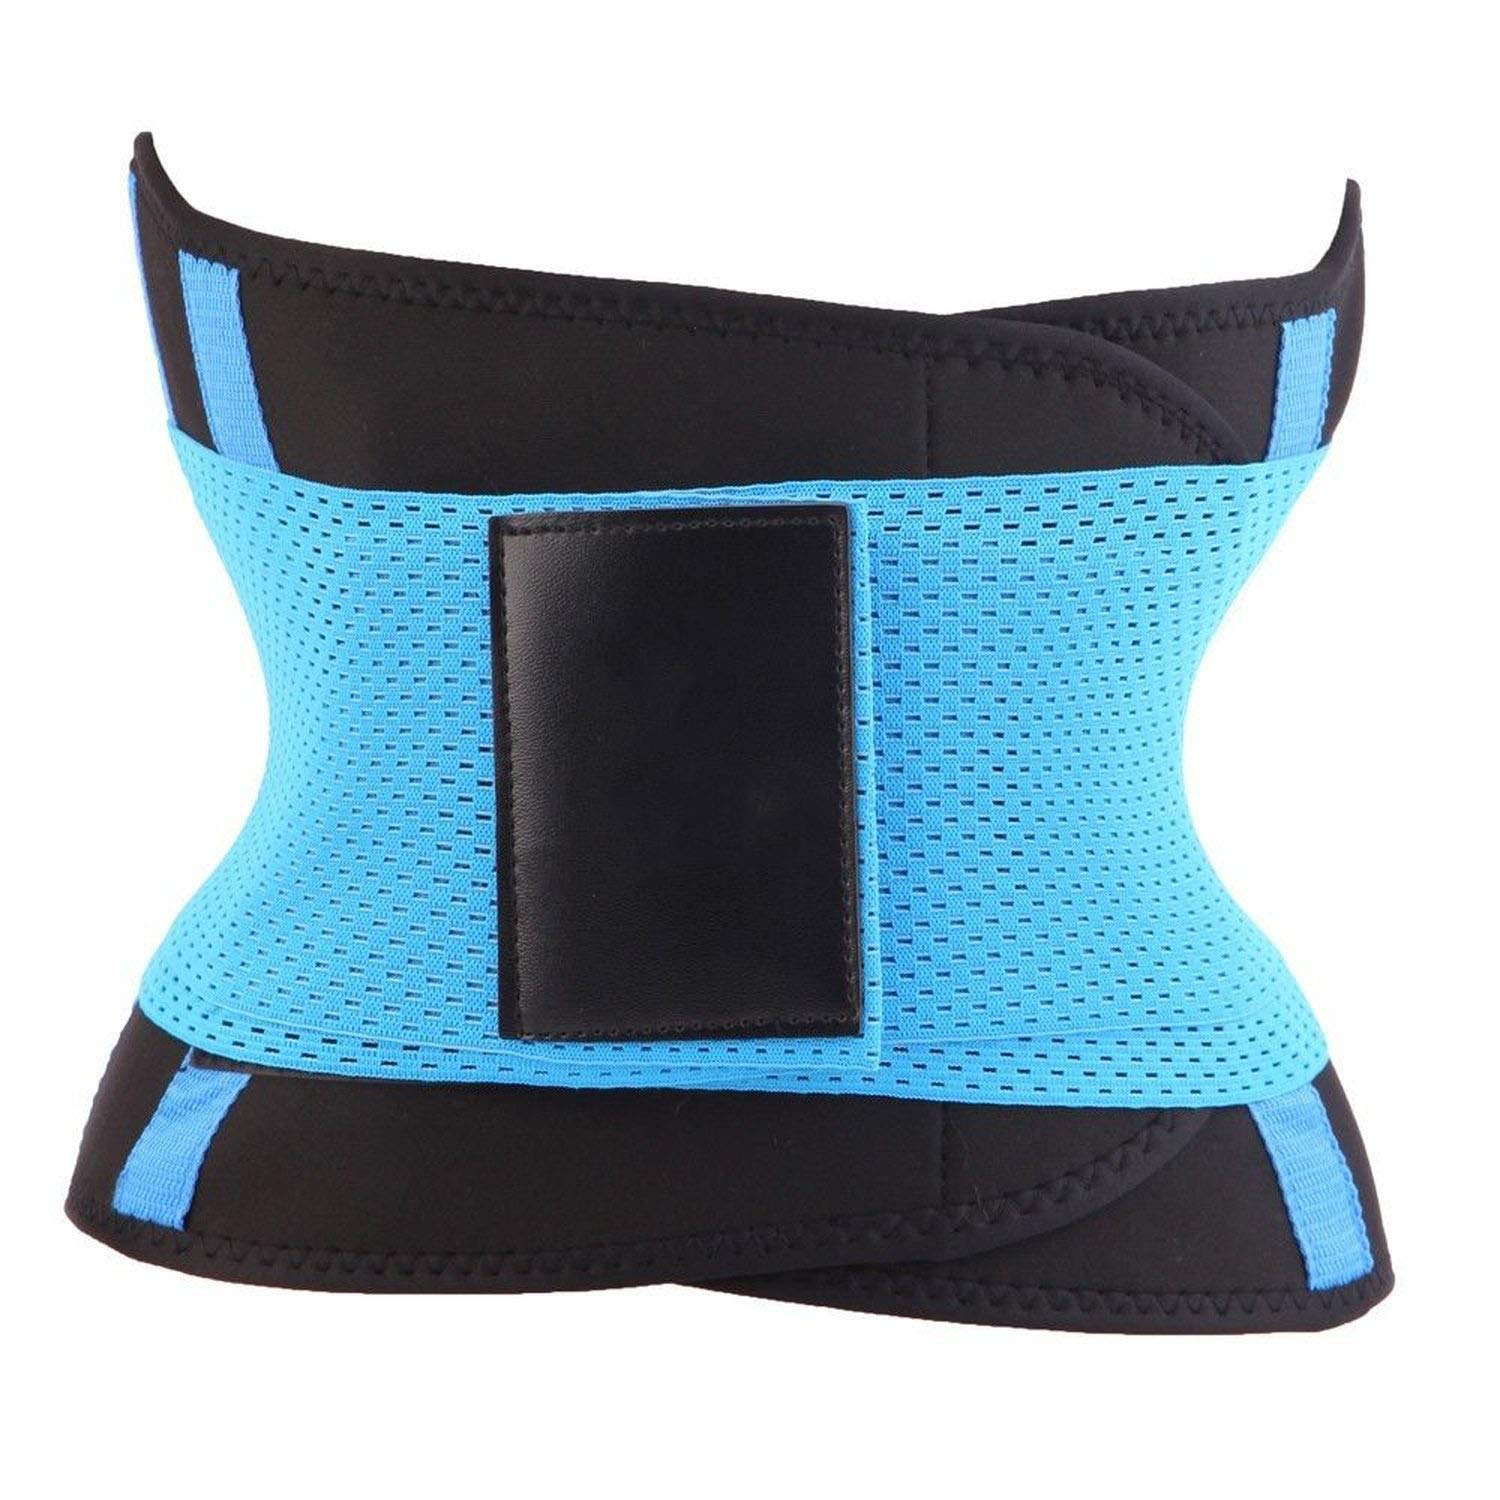 Women Waist Trainer Belt Hot Shapers Belly Wrap Trimmer Slimmer Compression Band Fitness Body Shaper